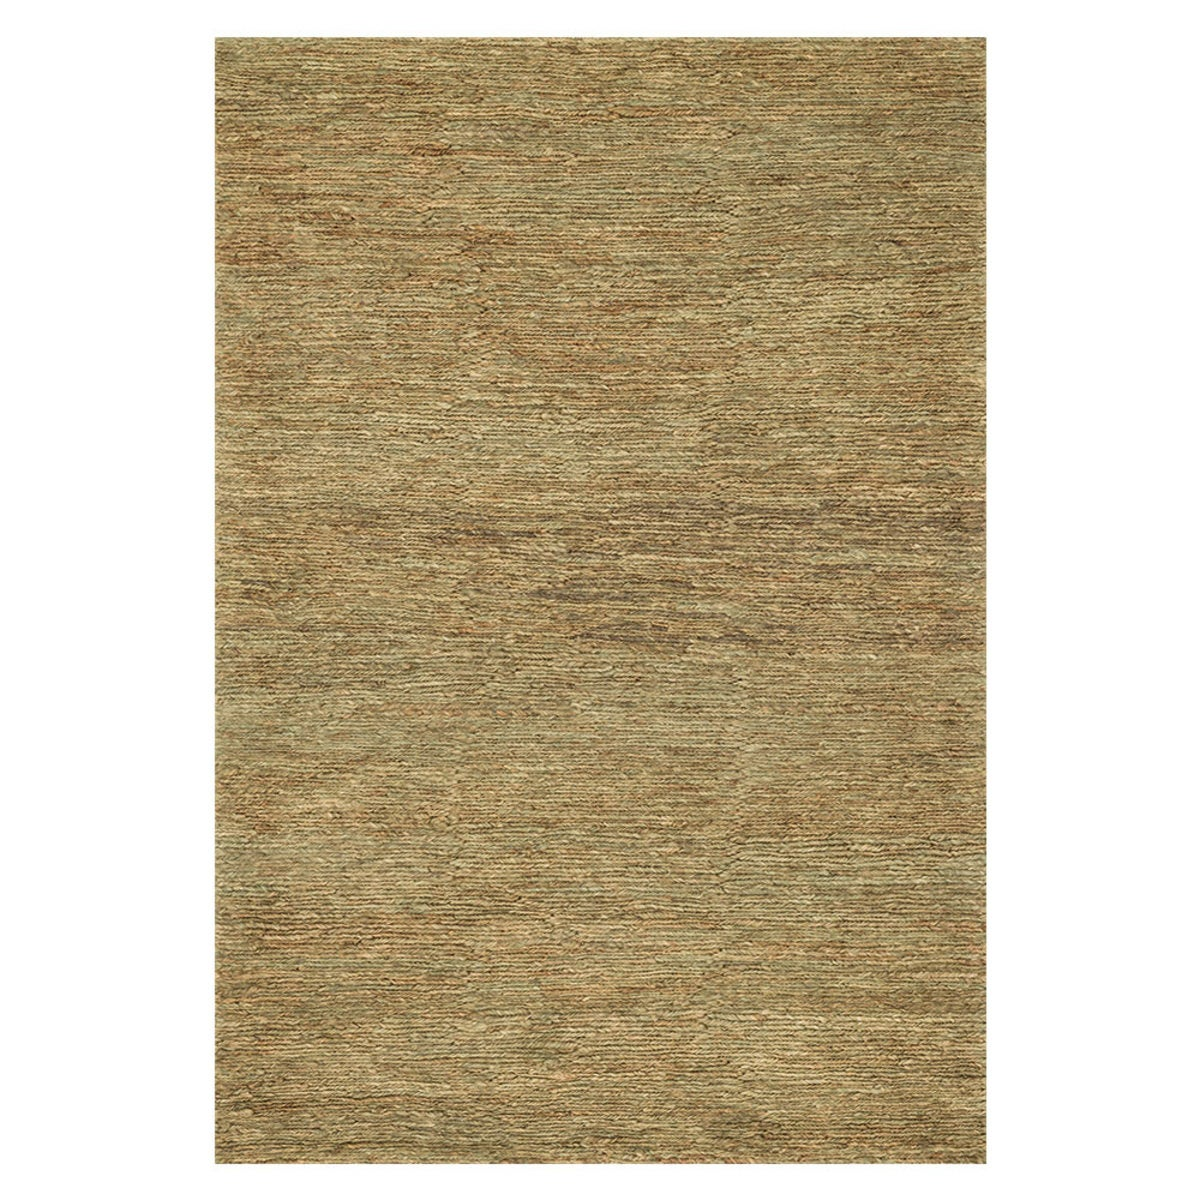 Loloi Turin Too Braided Jute Rug in Beige - 3'6 x 5'6 - Slate